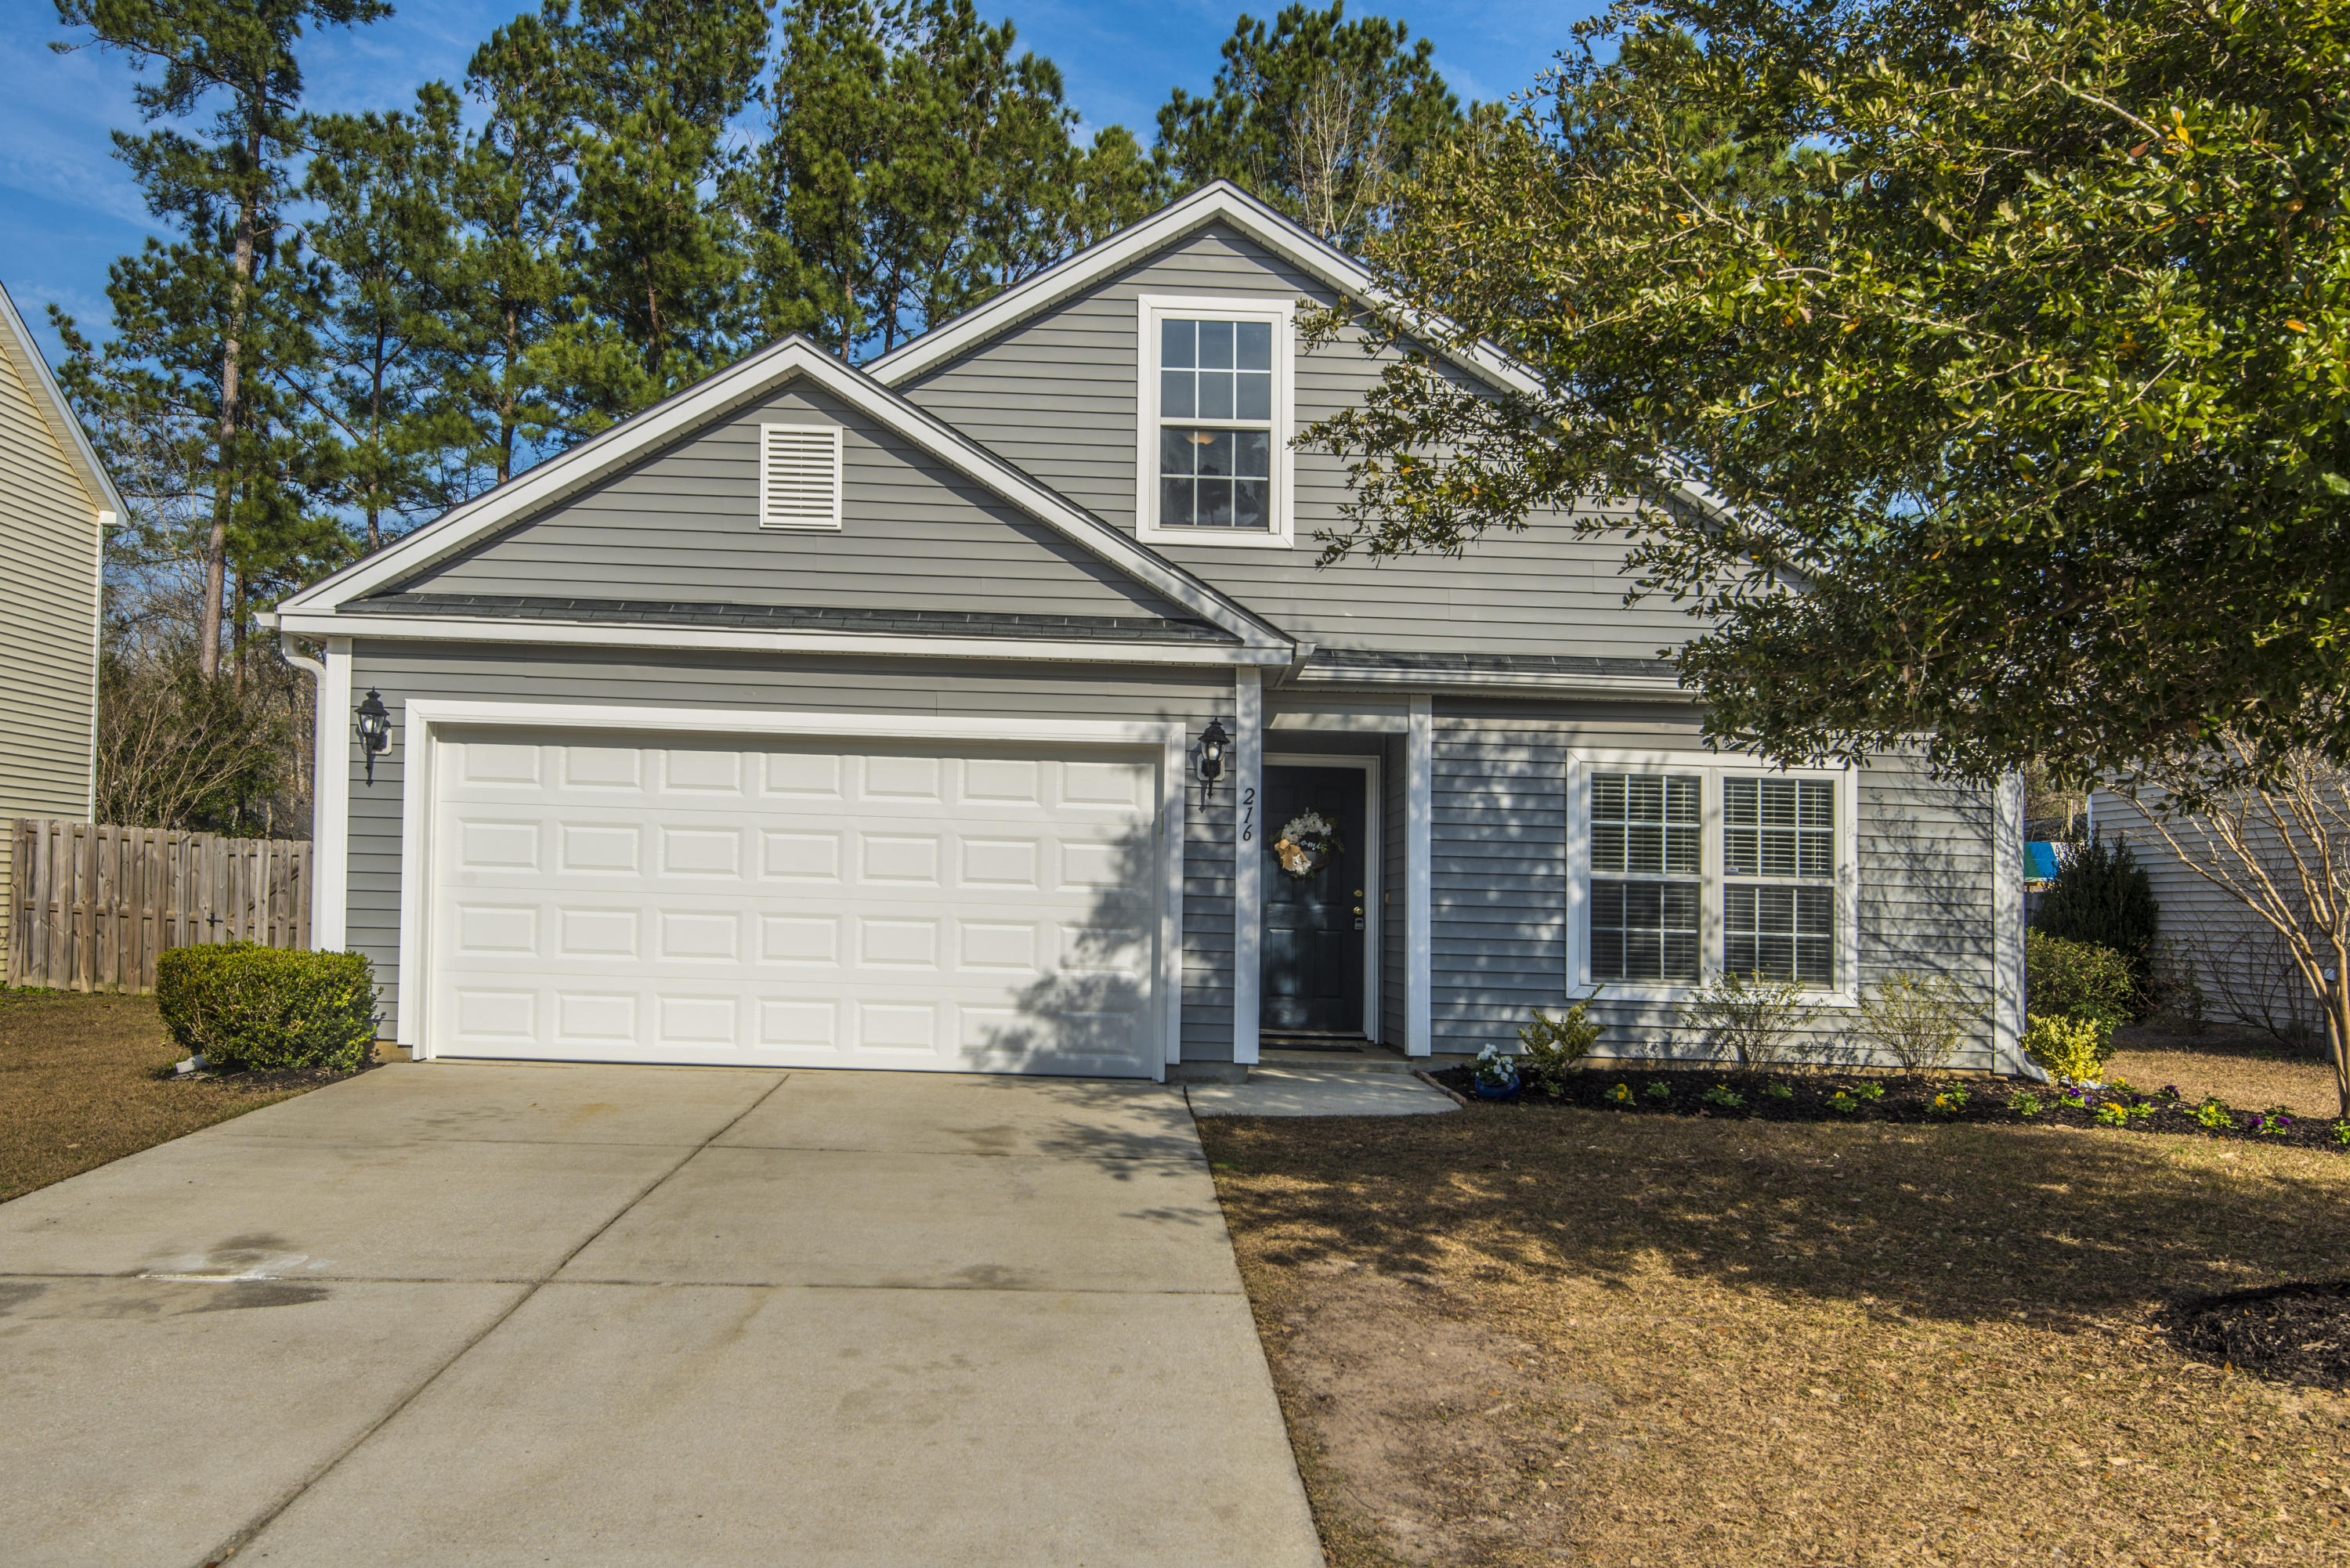 216 Myrtle Way Summerville, SC 29483